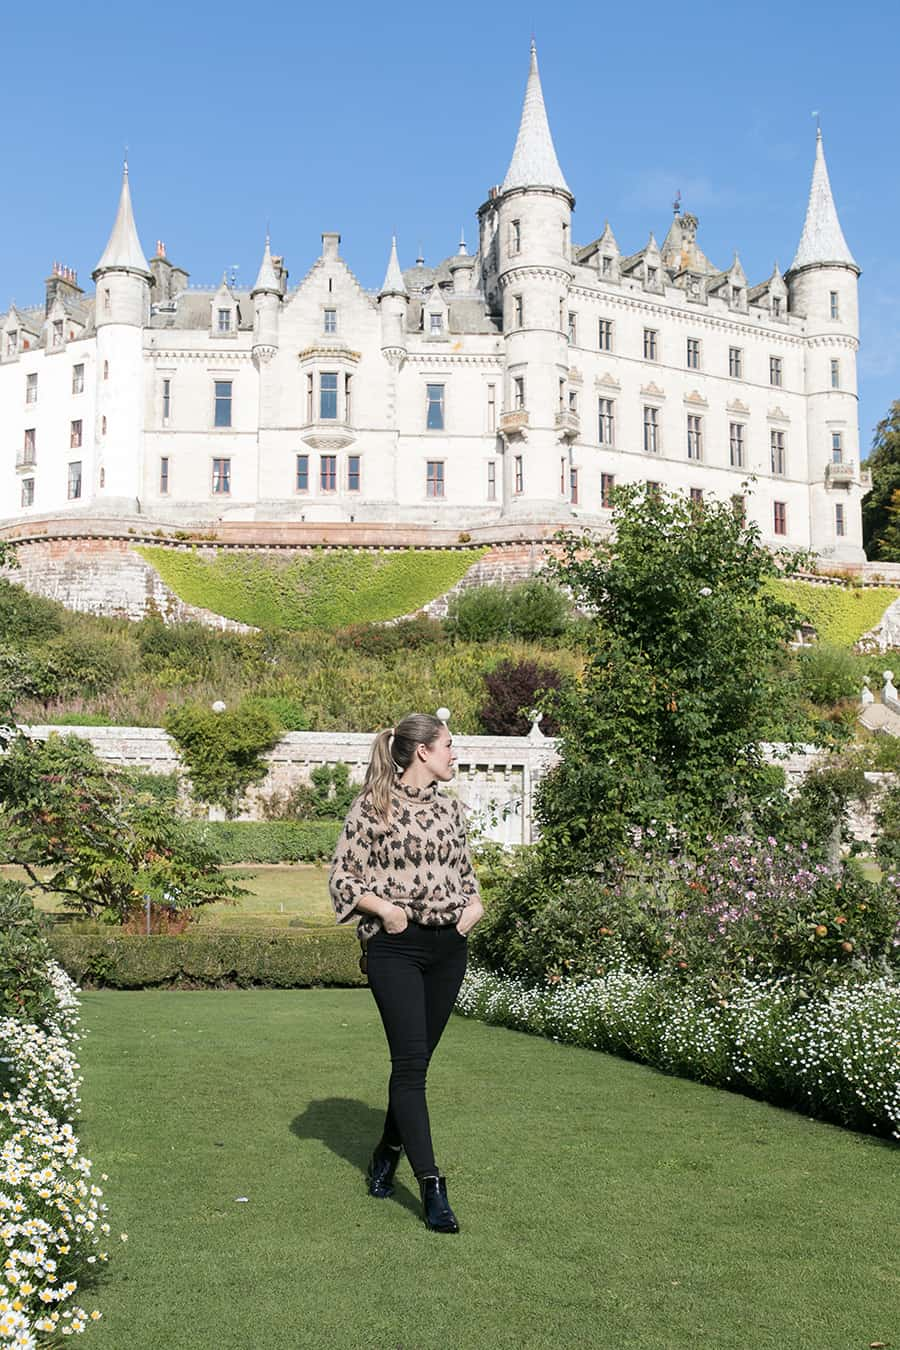 Eden Passante walking in front of Dunrobin Castle